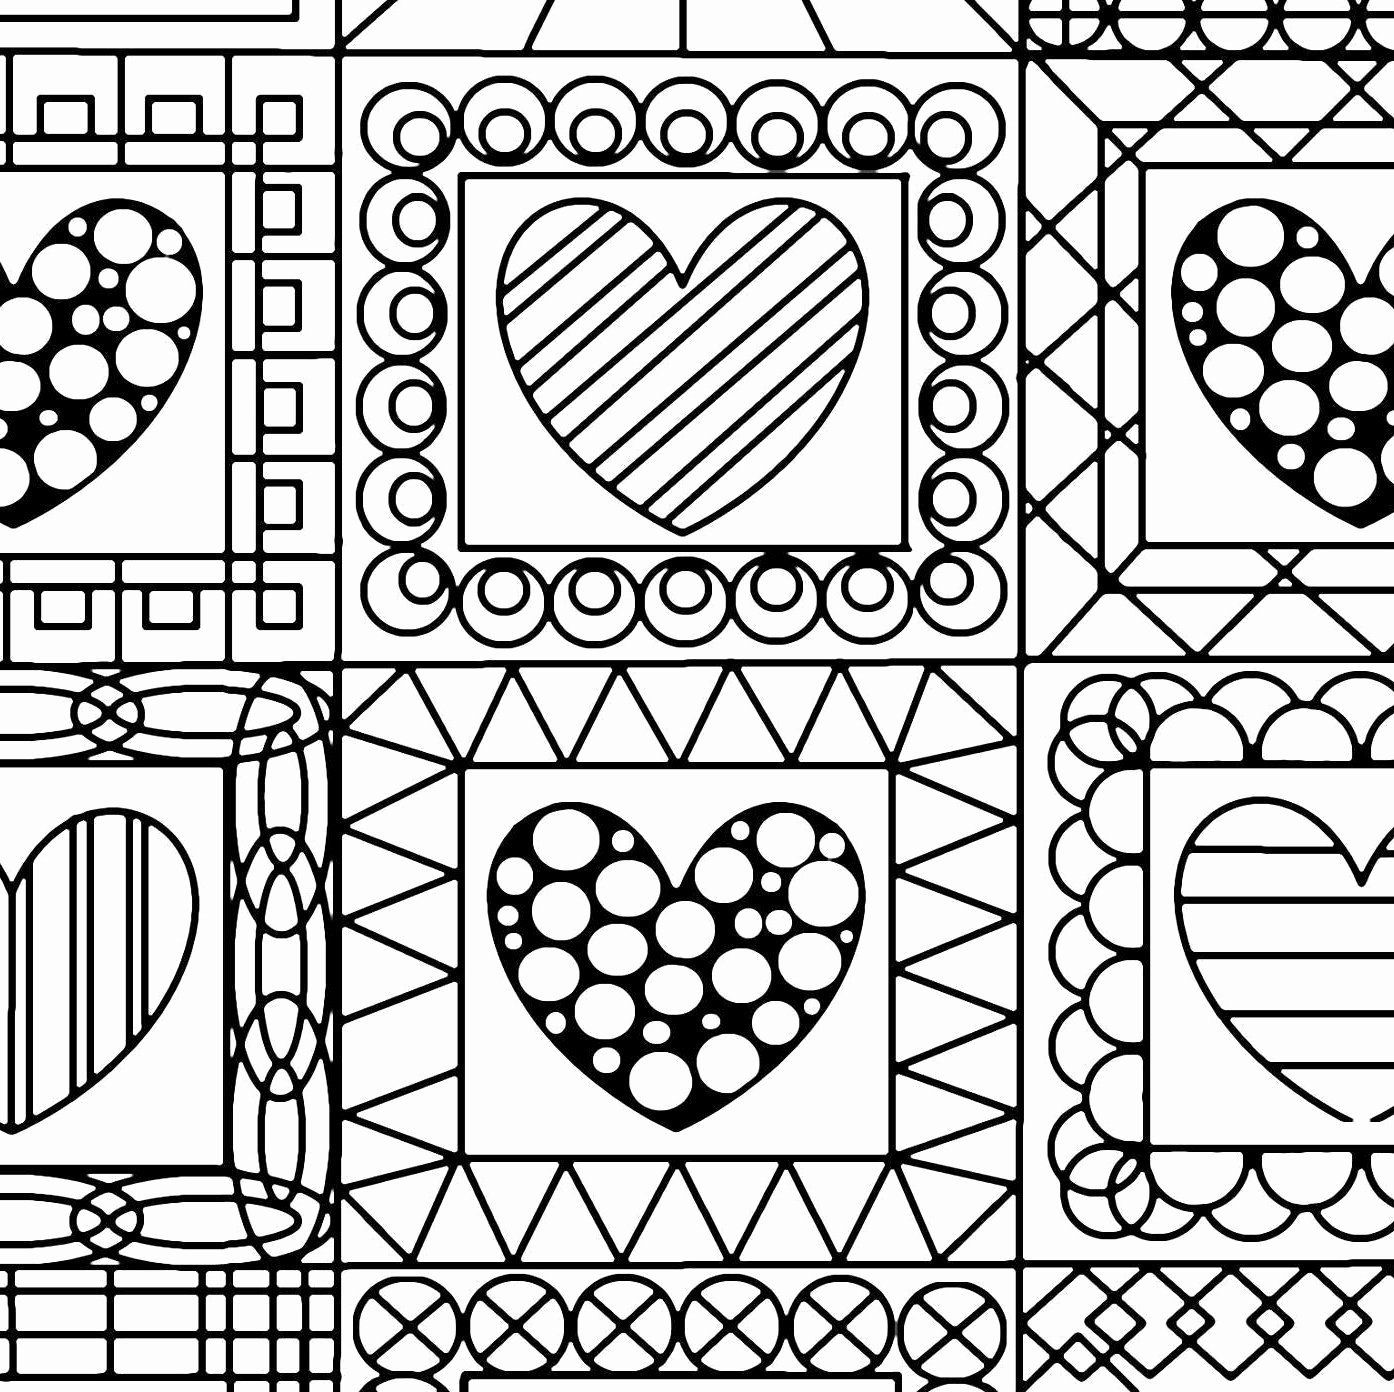 Free Printable Quilt Coloring Pages Awesome Quilt Coloring Pages Home Sketch Coloring Page Coloring Pages Love Coloring Pages Coloring Pages To Print